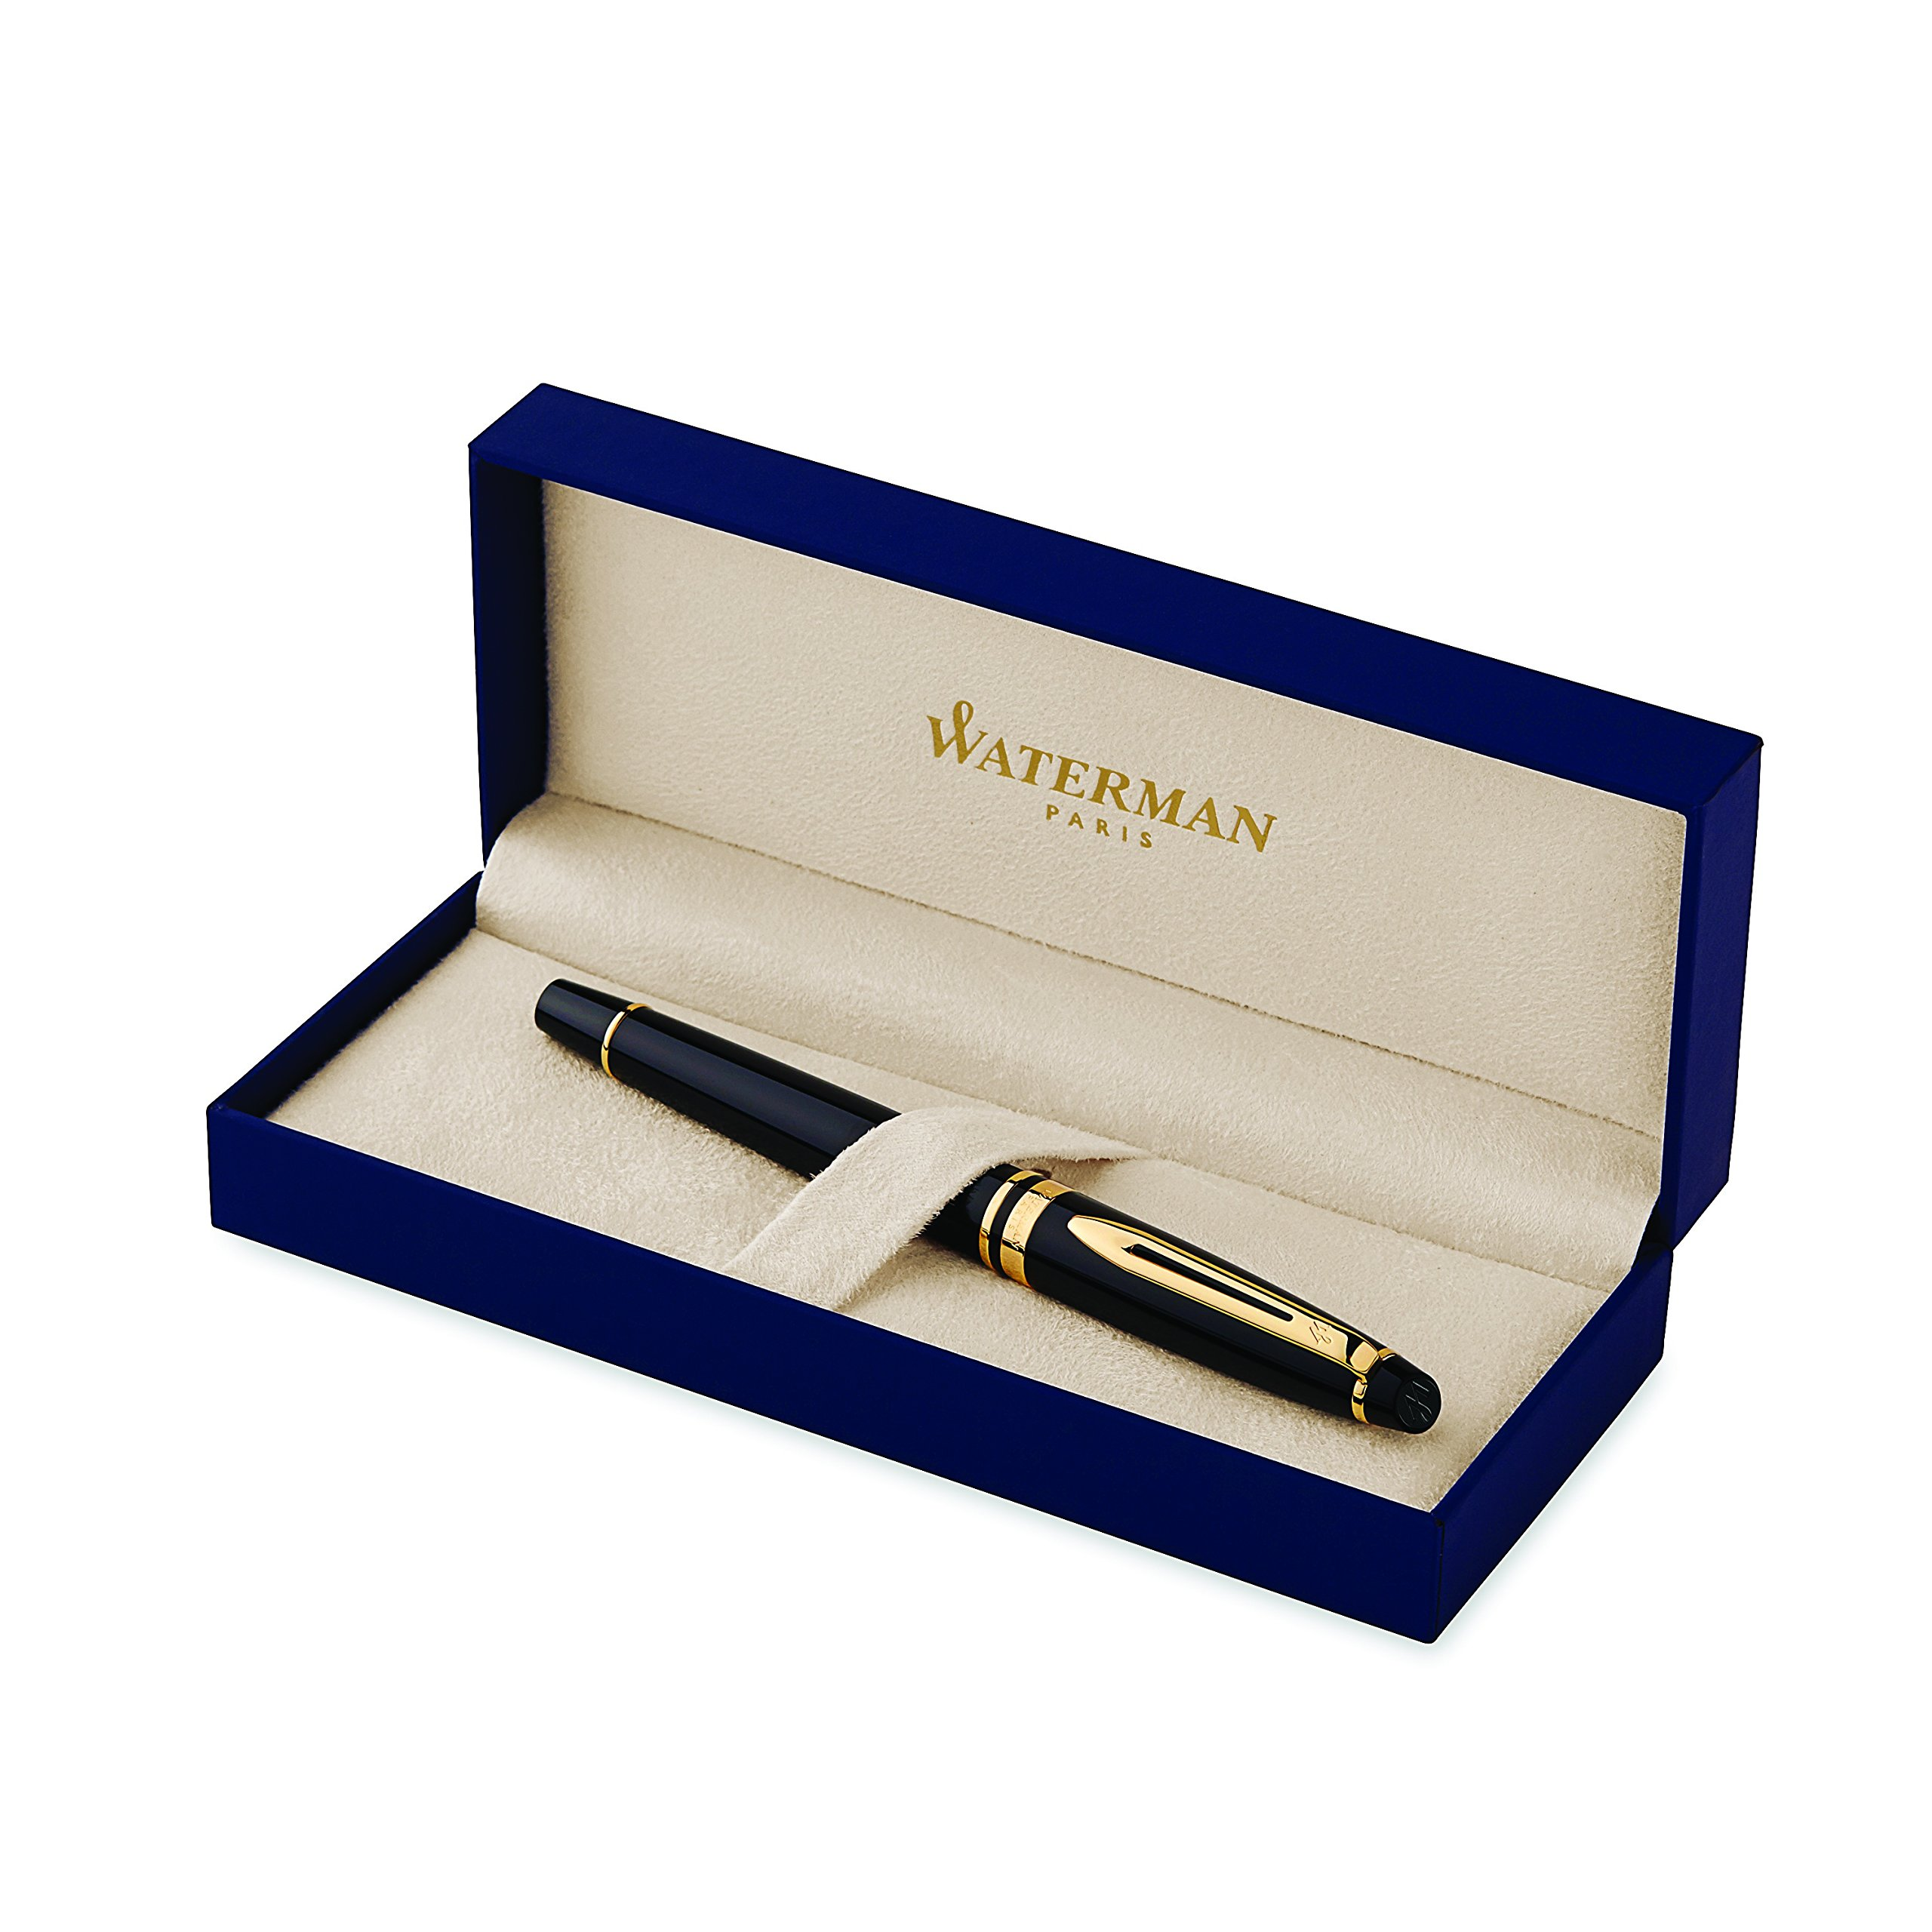 Waterman Expert Deluxe Rollerball Pen with Fine Black refill